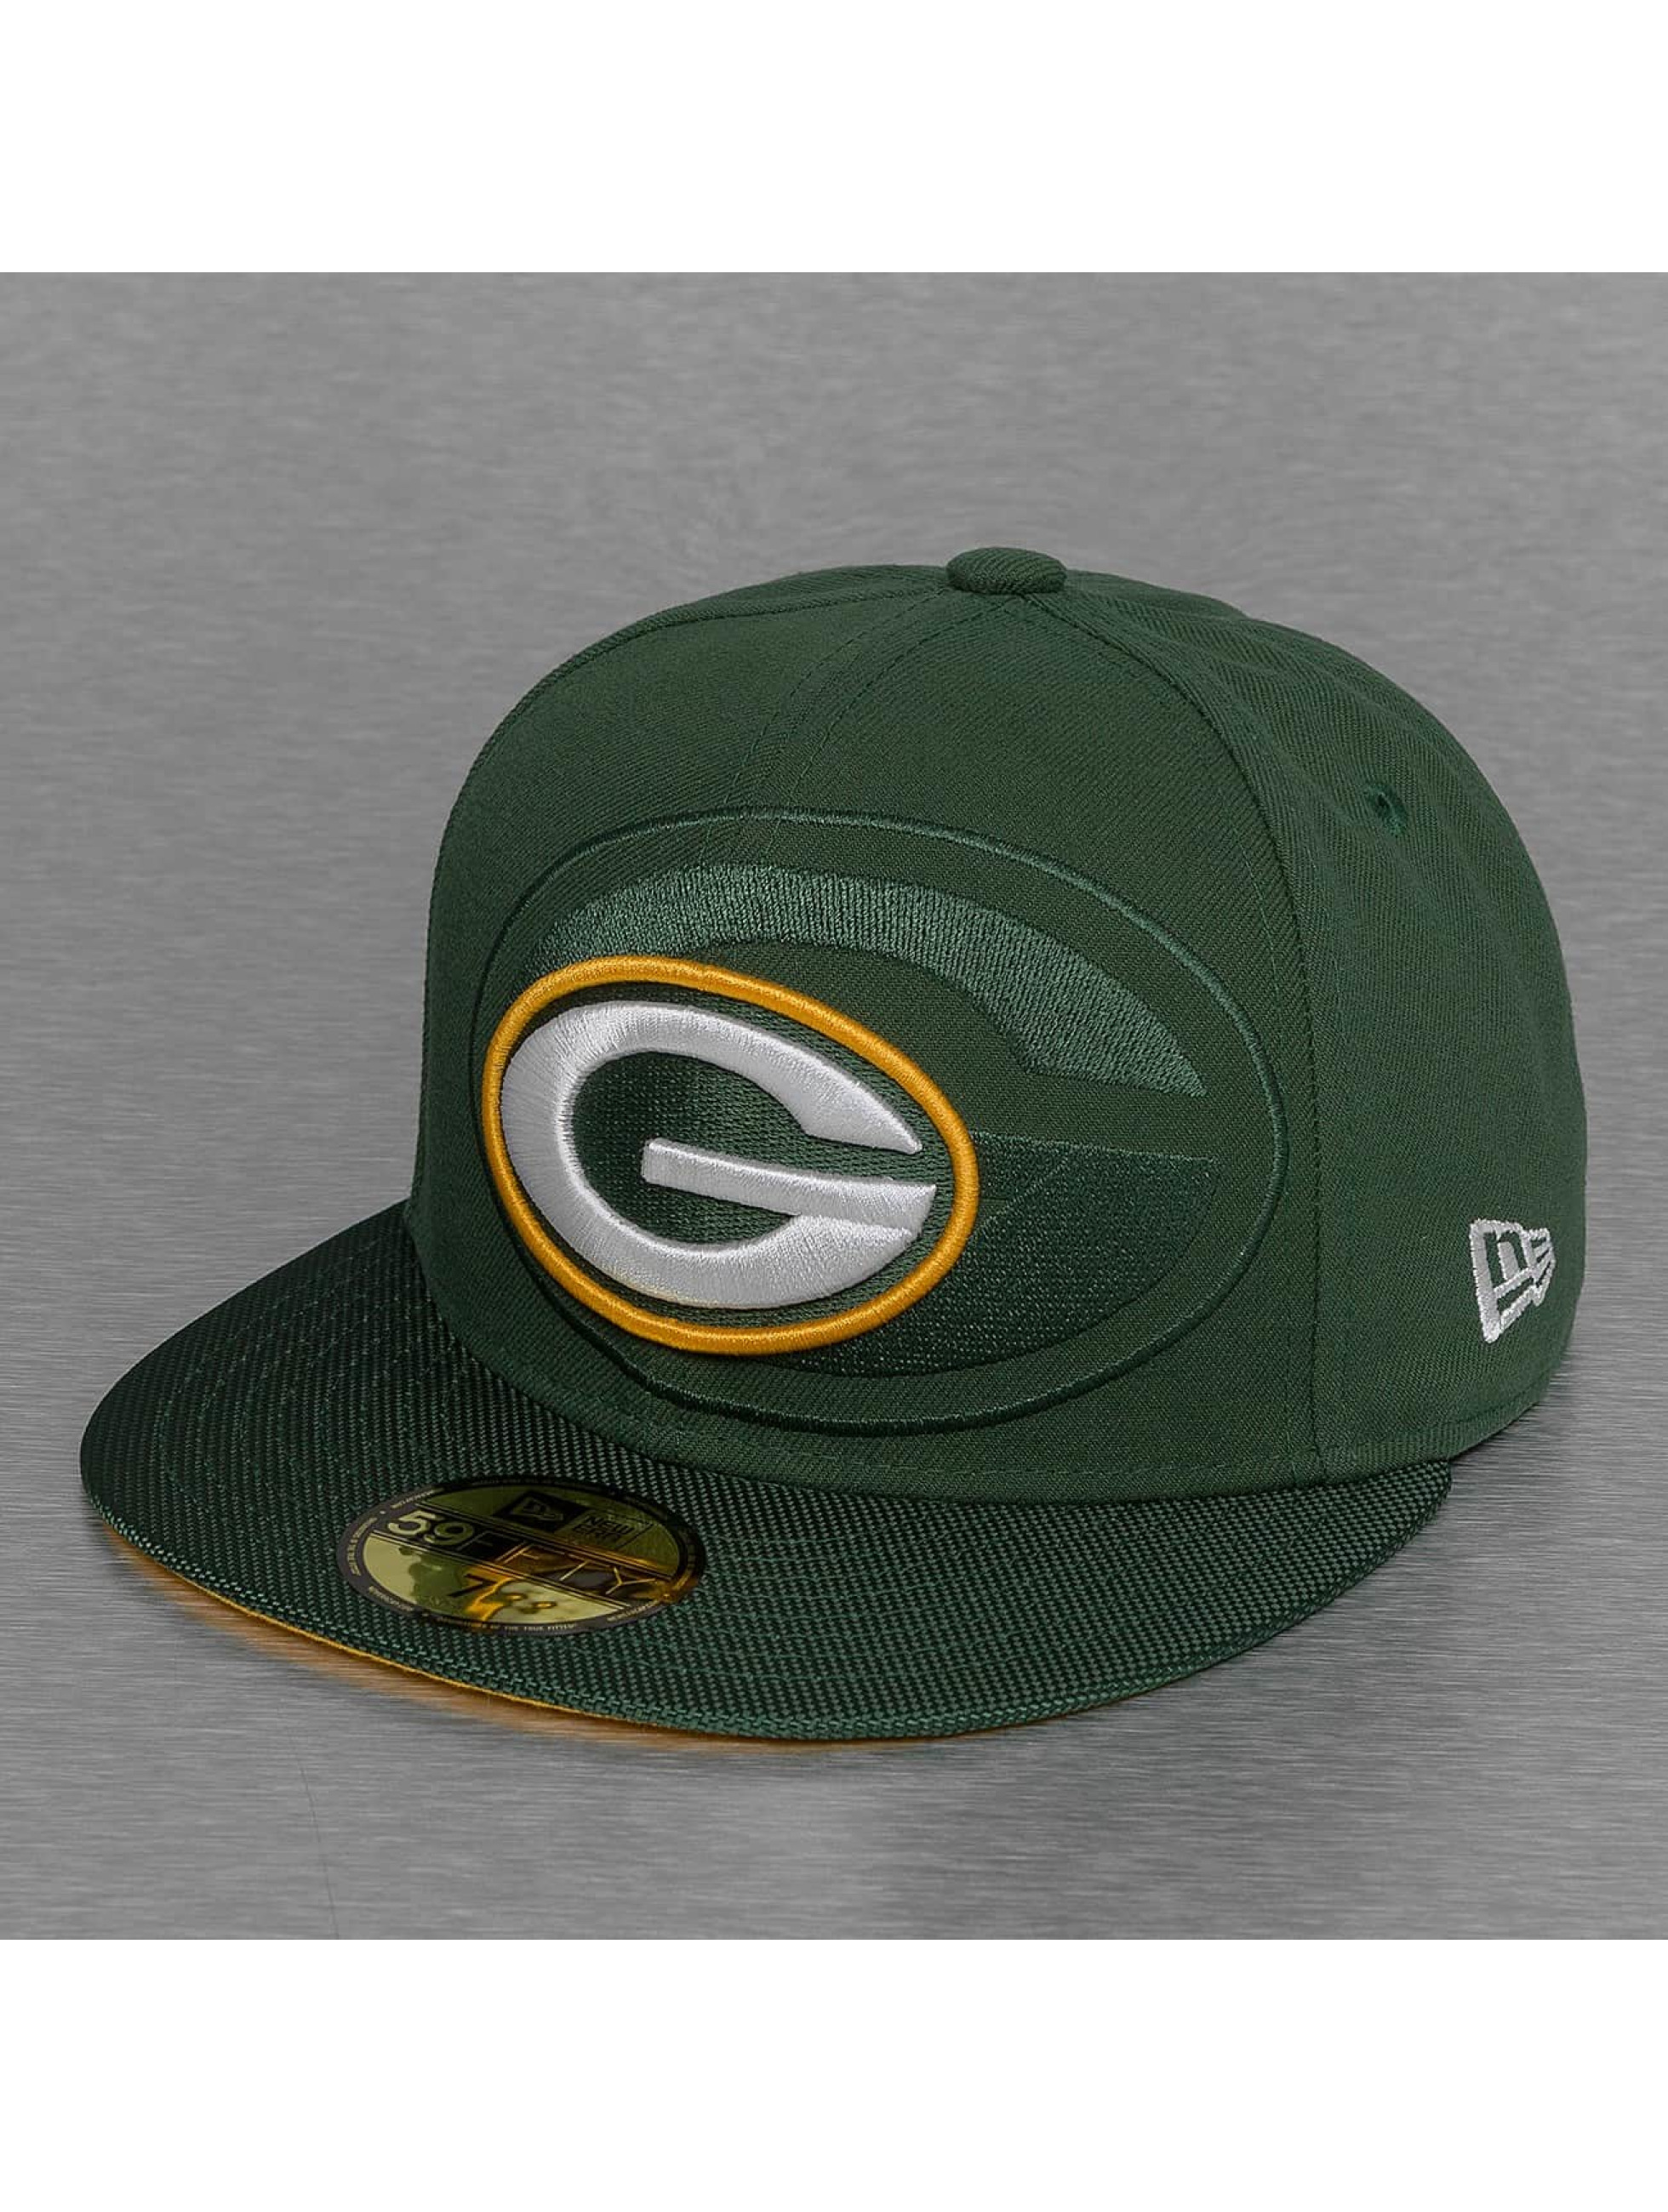 New Era Fitted Cap NFL Green Bay Packers Sideline groen